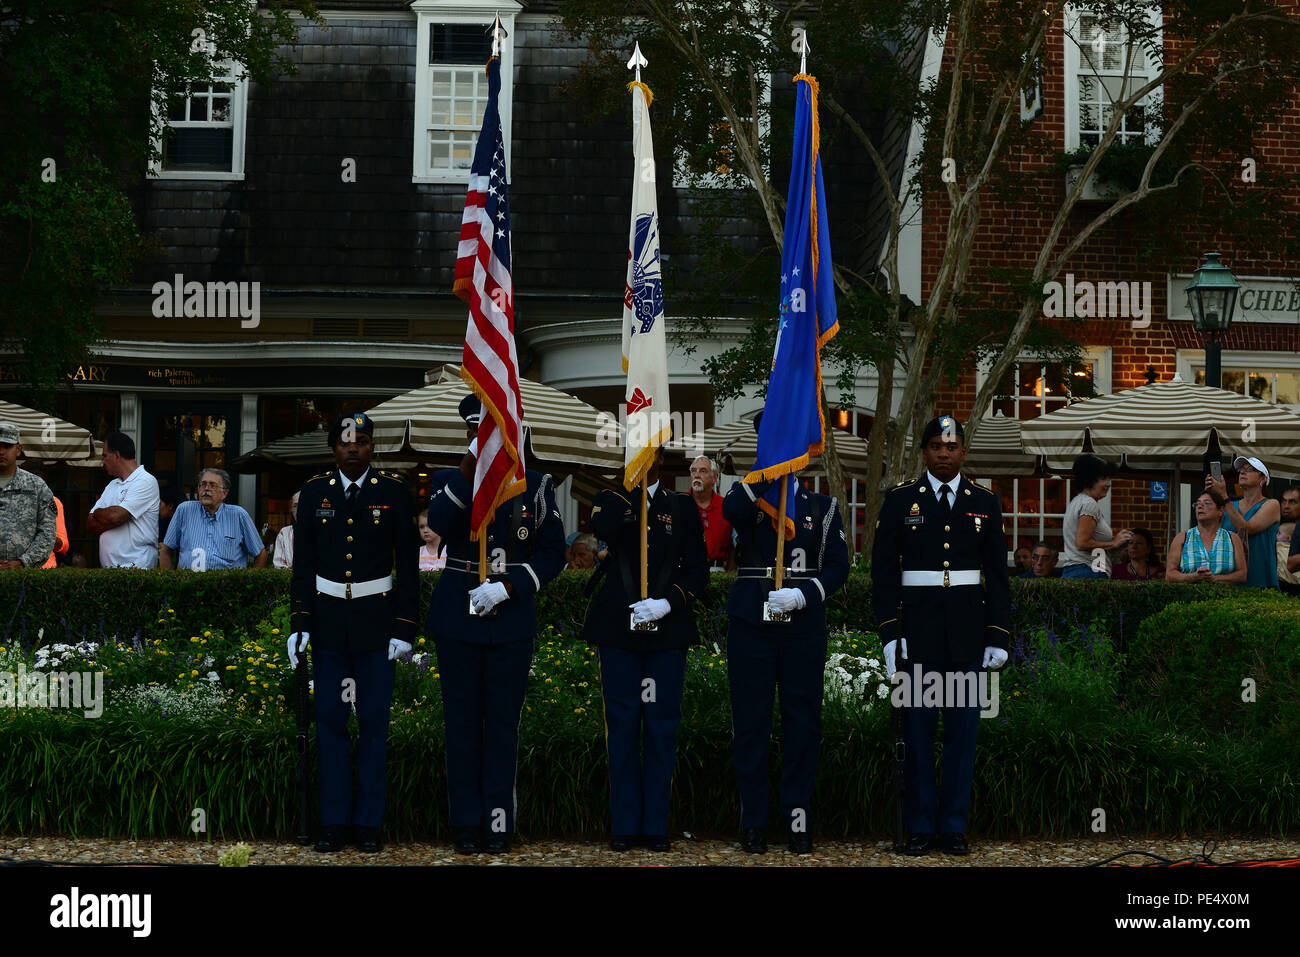 Joint Base Langley-Eustis, Va., Color Guardsmen and women presents the colors at the Constitution Day concert in Williamsburg, Va., Sept. 17, 2015. On Sept. 17, 1787, the United States' Founding Fathers signed the U.S. Constitution, establishing the framework of our government and the freedoms Americans enjoy today. (U.S. Air Force photo by Senior Airman Kimberly Nagle/Released) - Stock Image